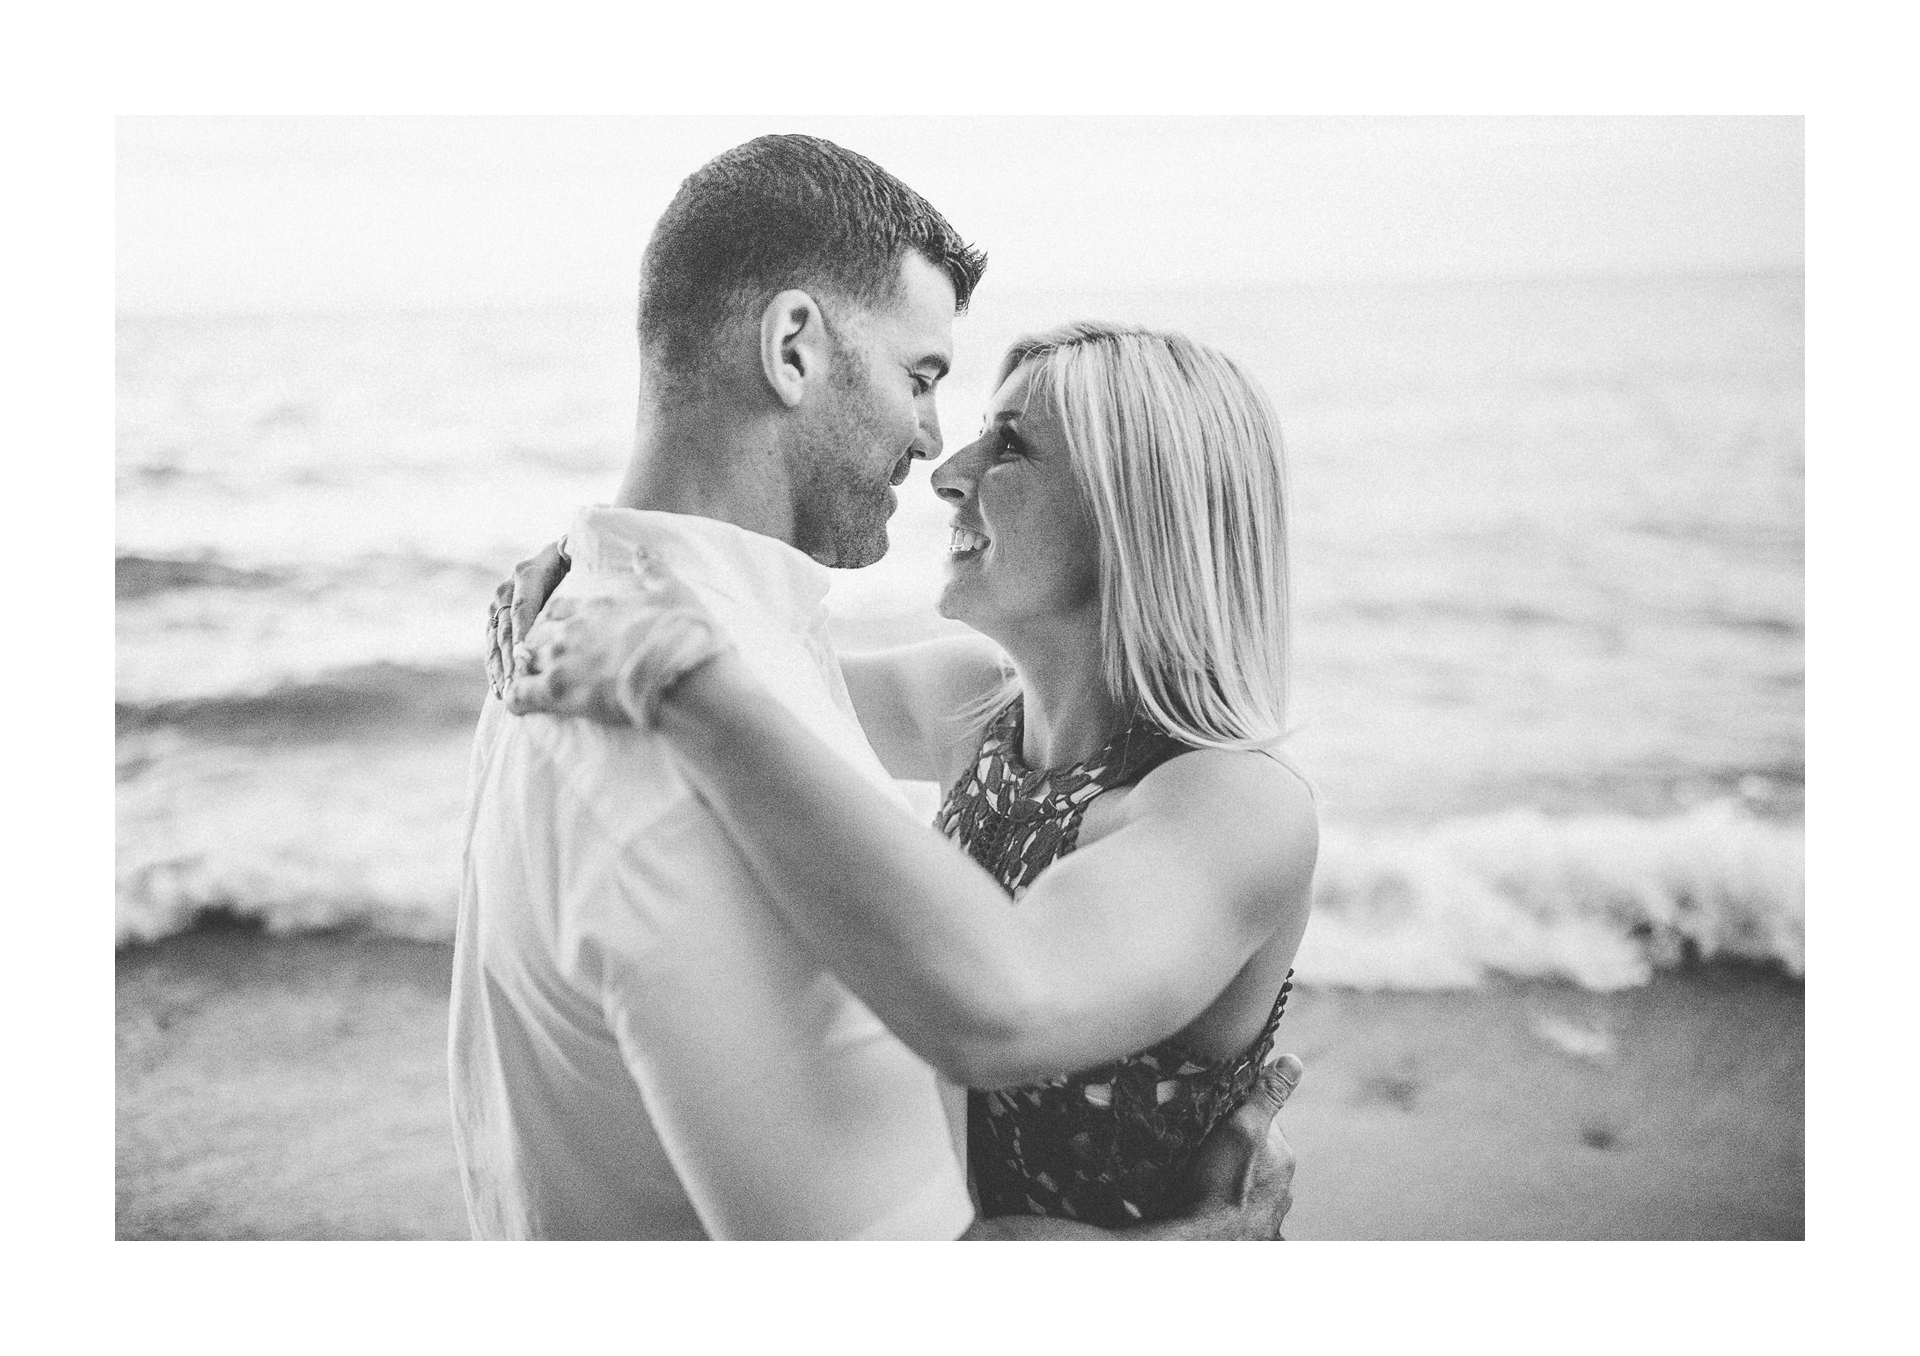 Sara Shookman Angelo DiFranco Engagement photos in cleveland by too much awesomeness photography 37.jpg